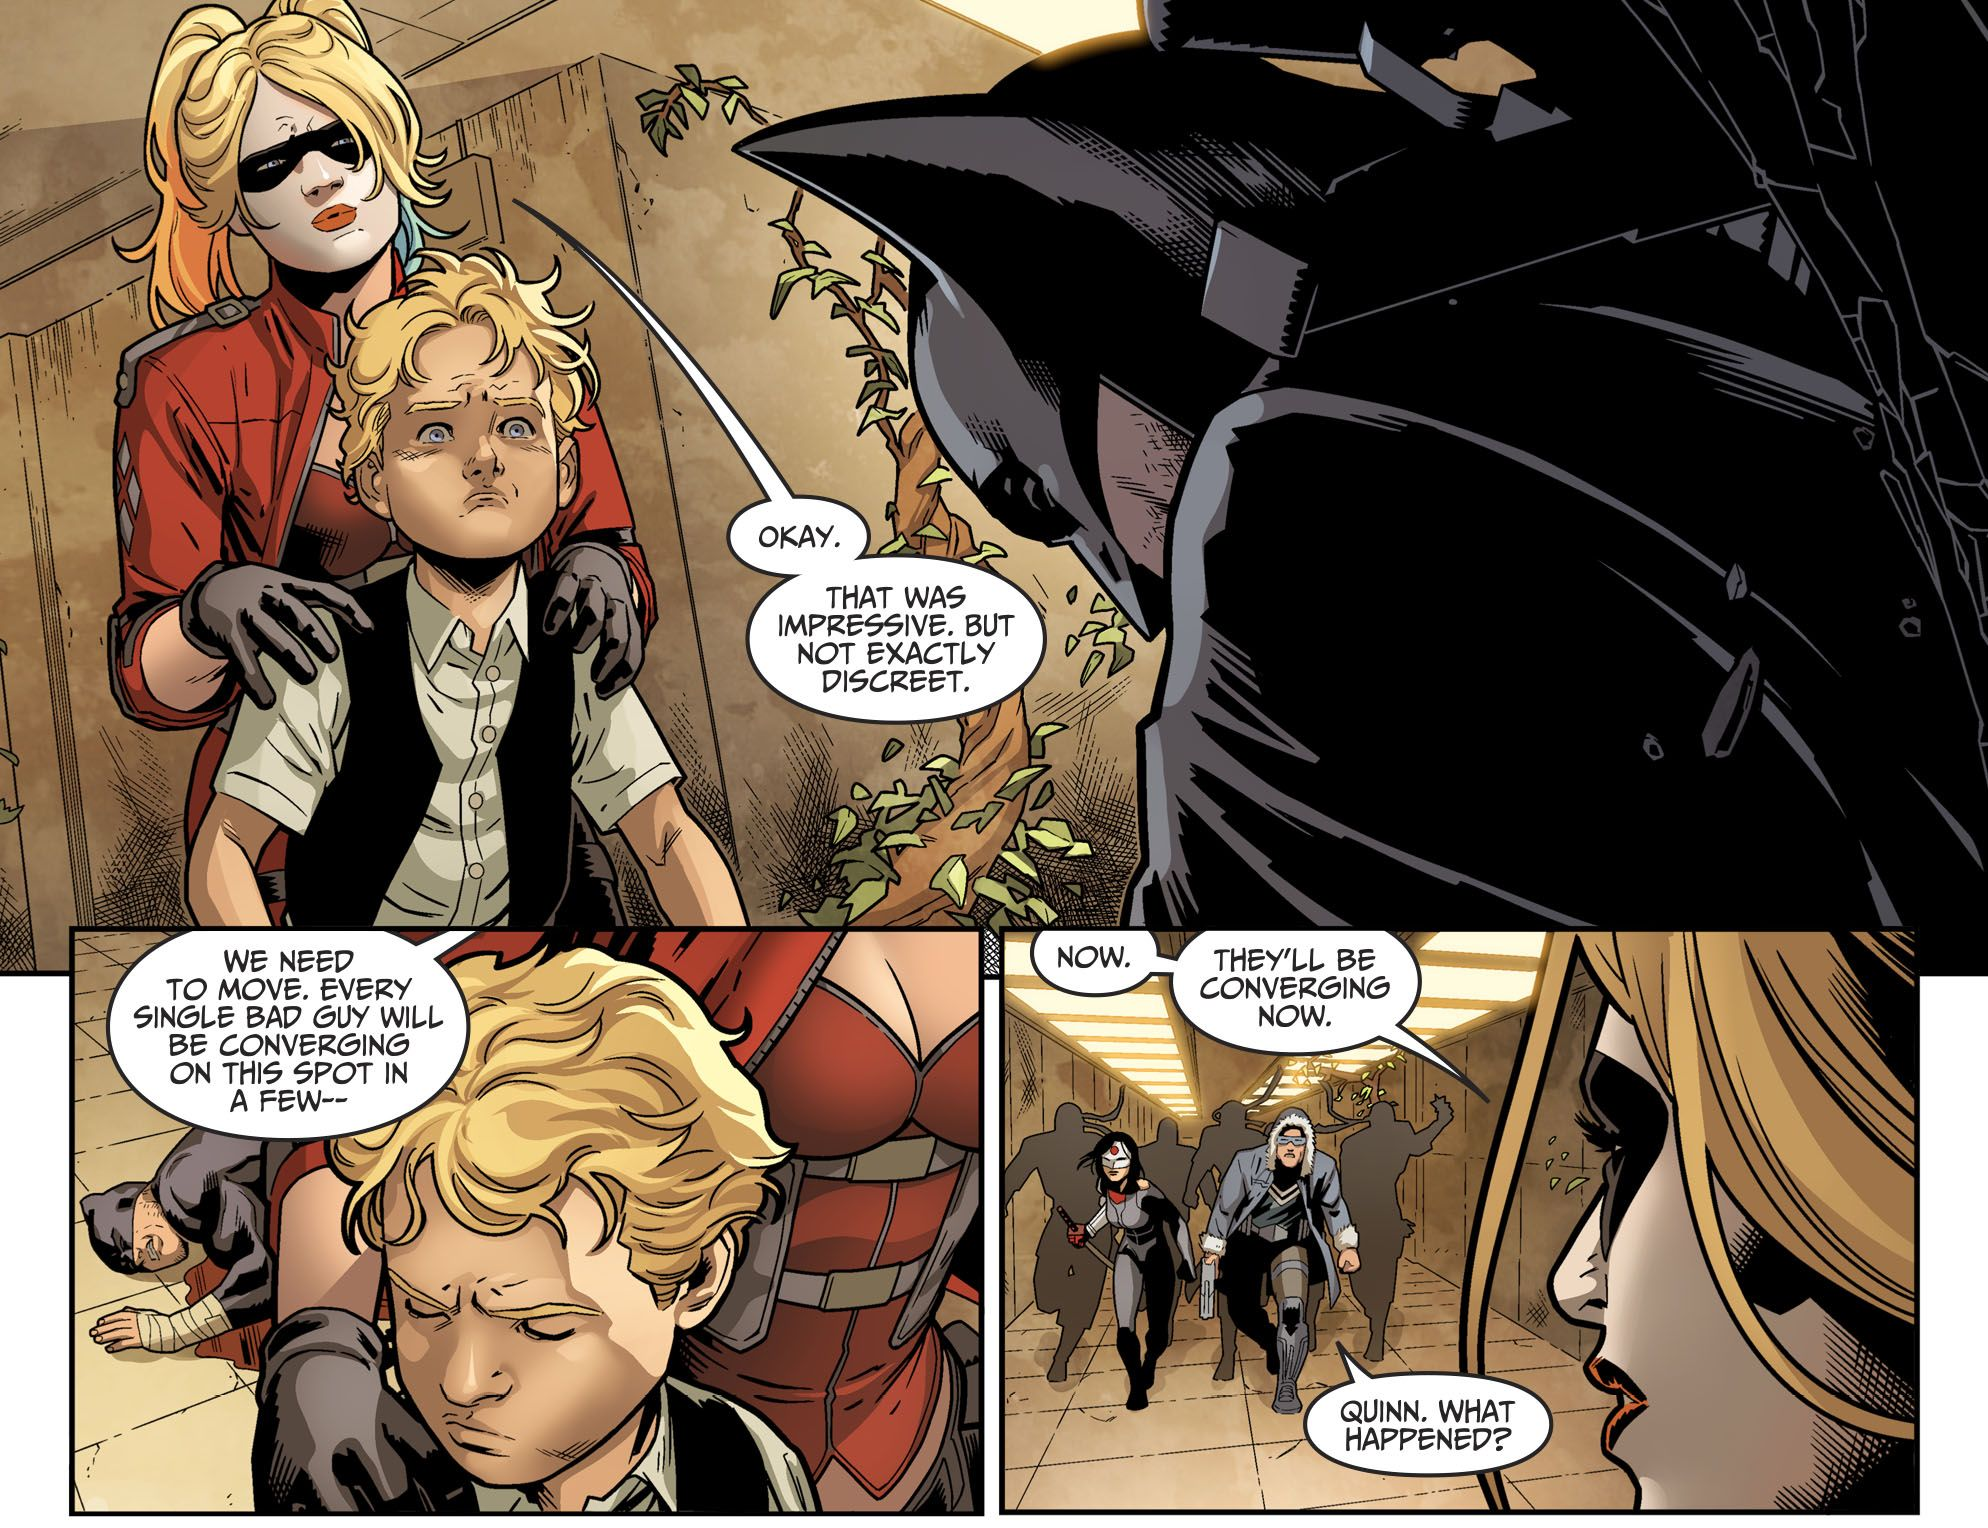 Injustice 2 Issue 21 Read Injustice 2 Issue 21 Comic Online In High Quality Comics Injustice 2 Comics Online